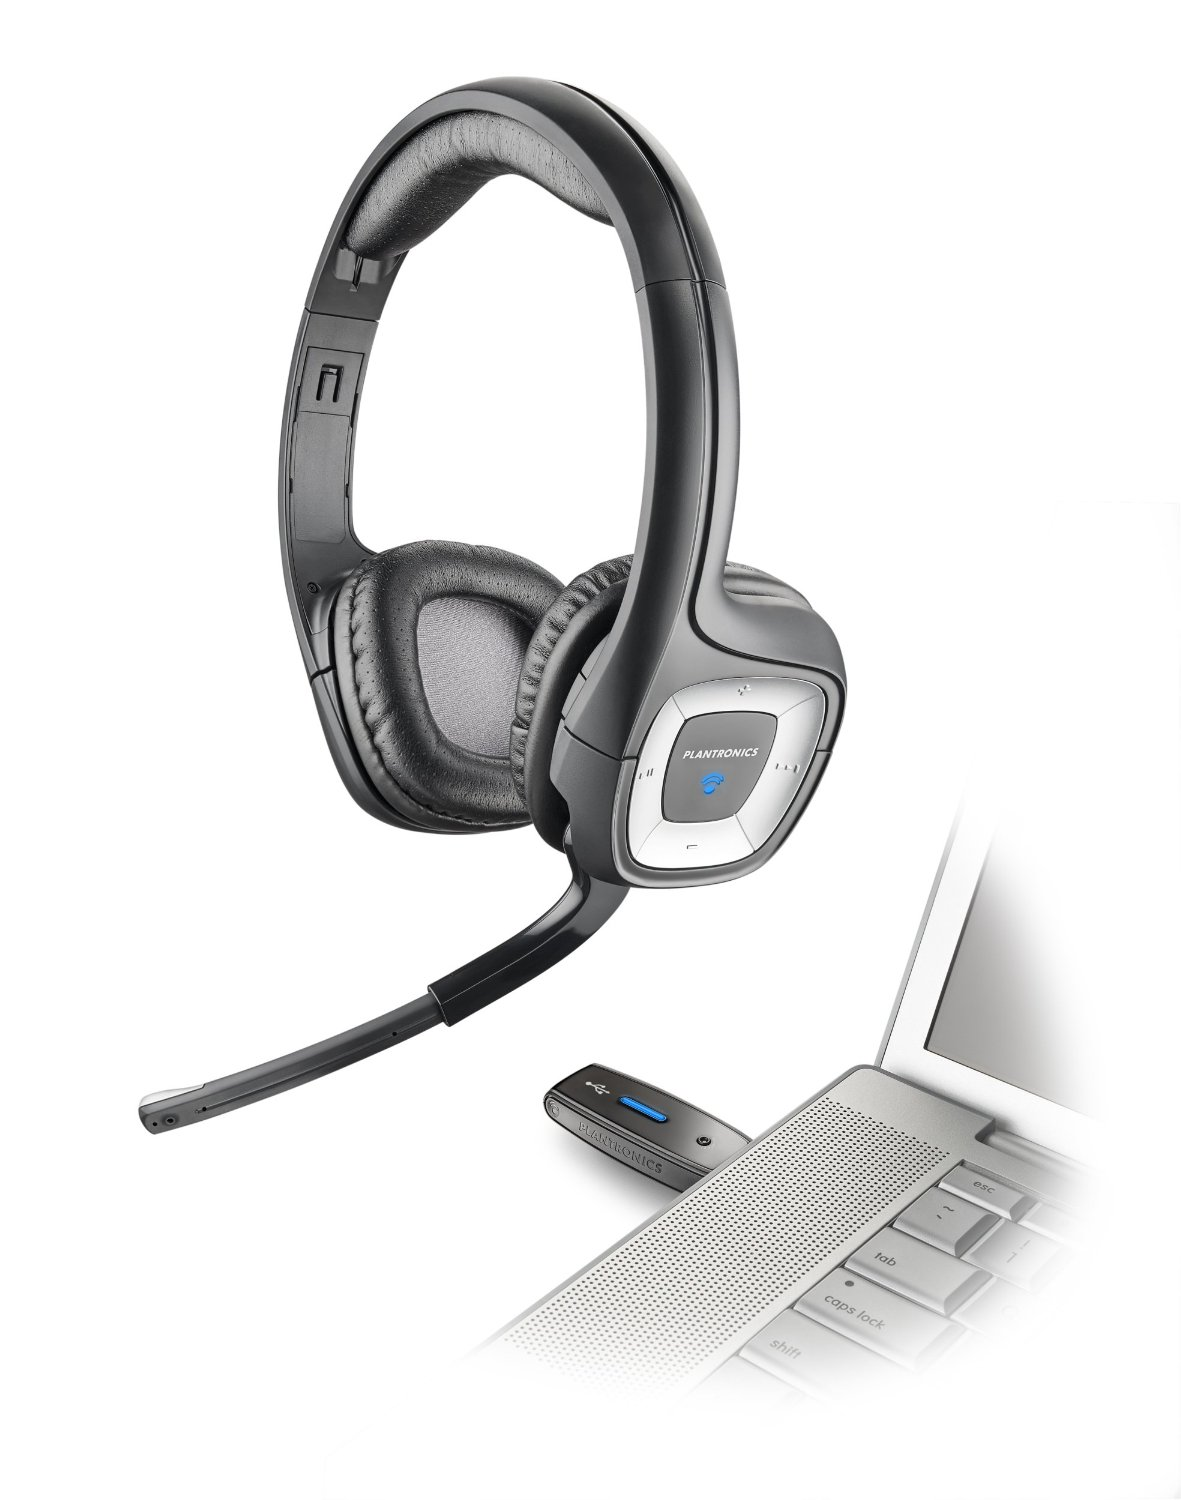 Plantronics Audio 995 Headset Review